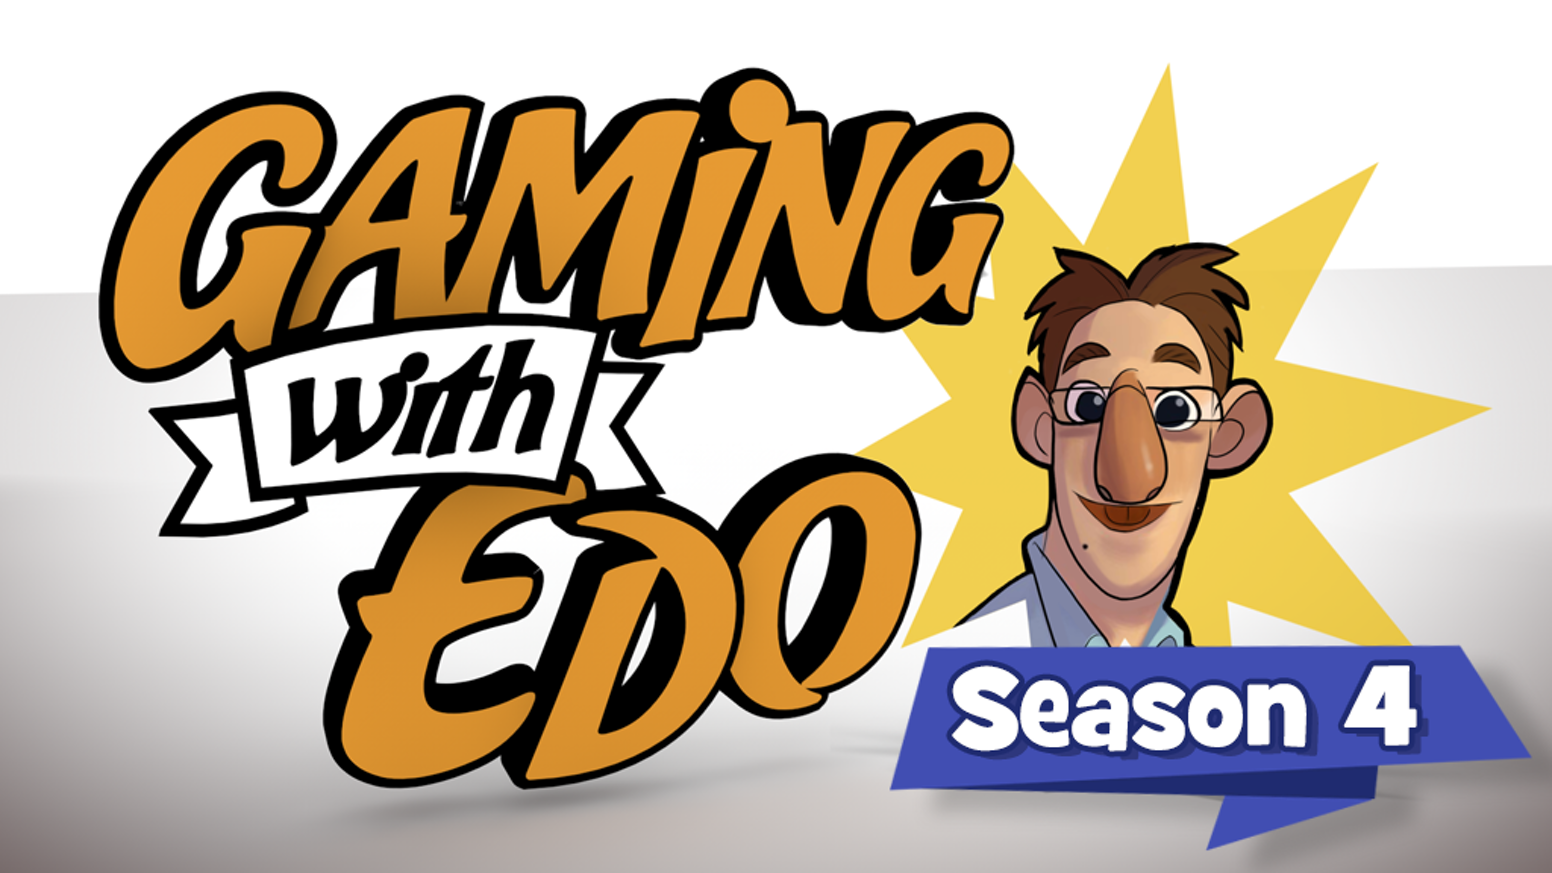 Help make Season 4 of Gaming with Edo better than ever!